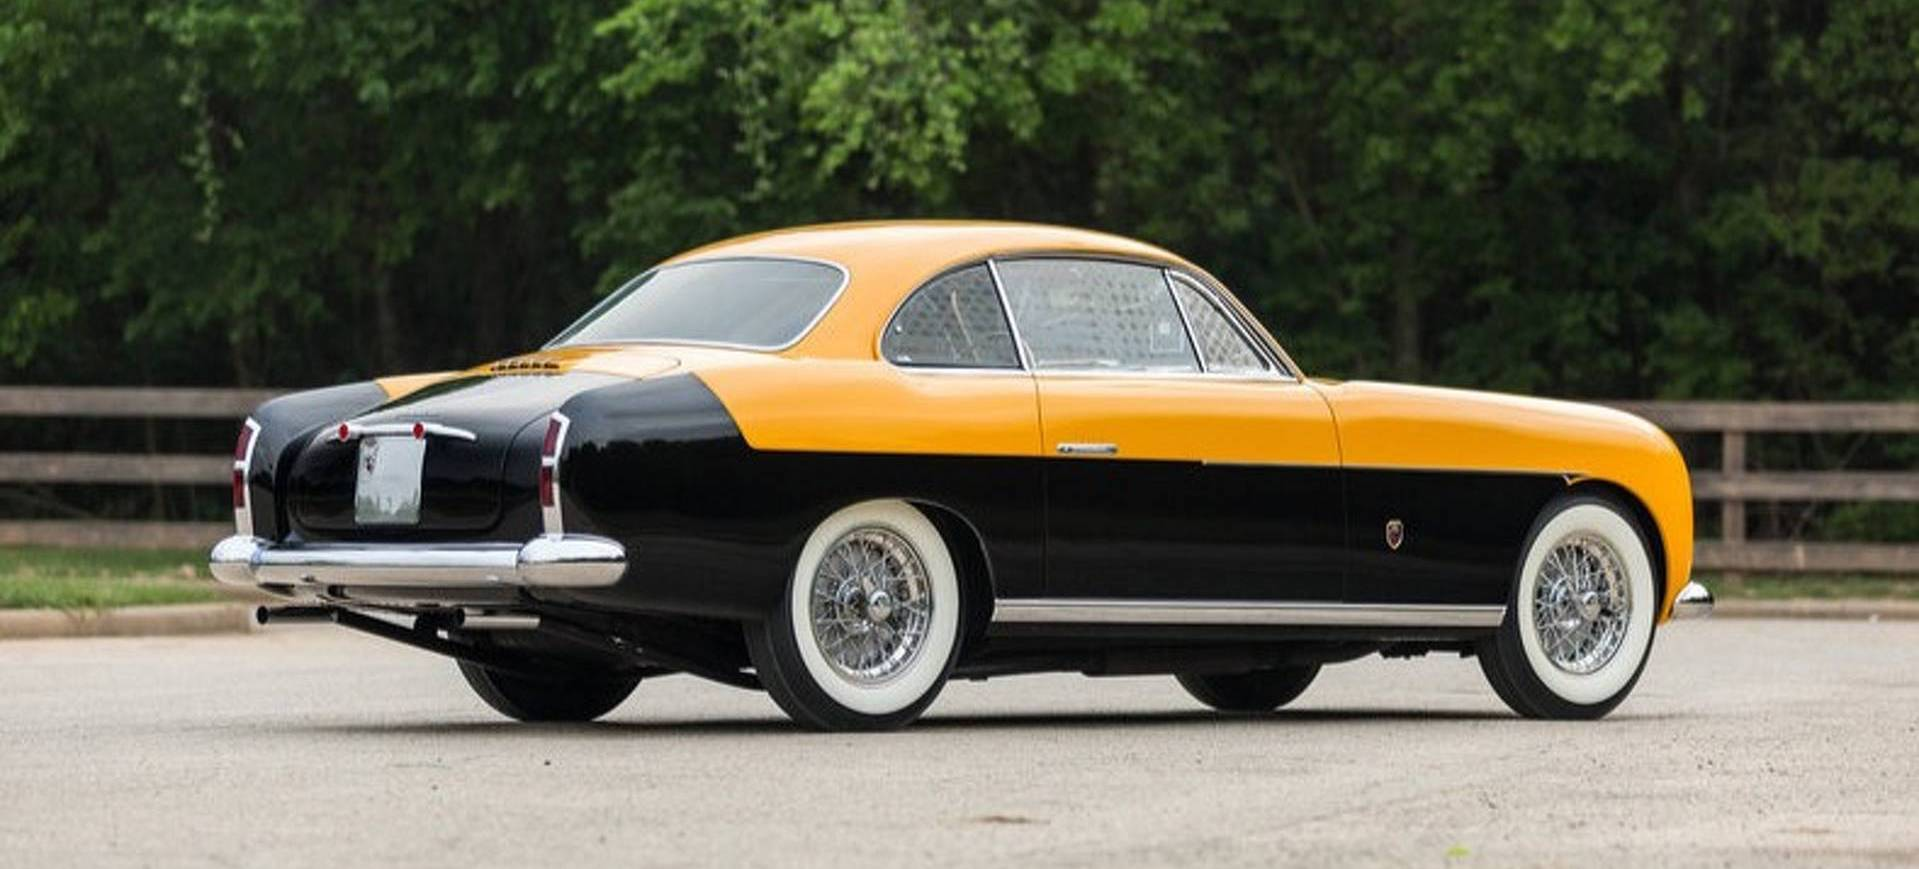 Unique Ferrari 212 Inter By Ghia Demands Almost $1.6 Million